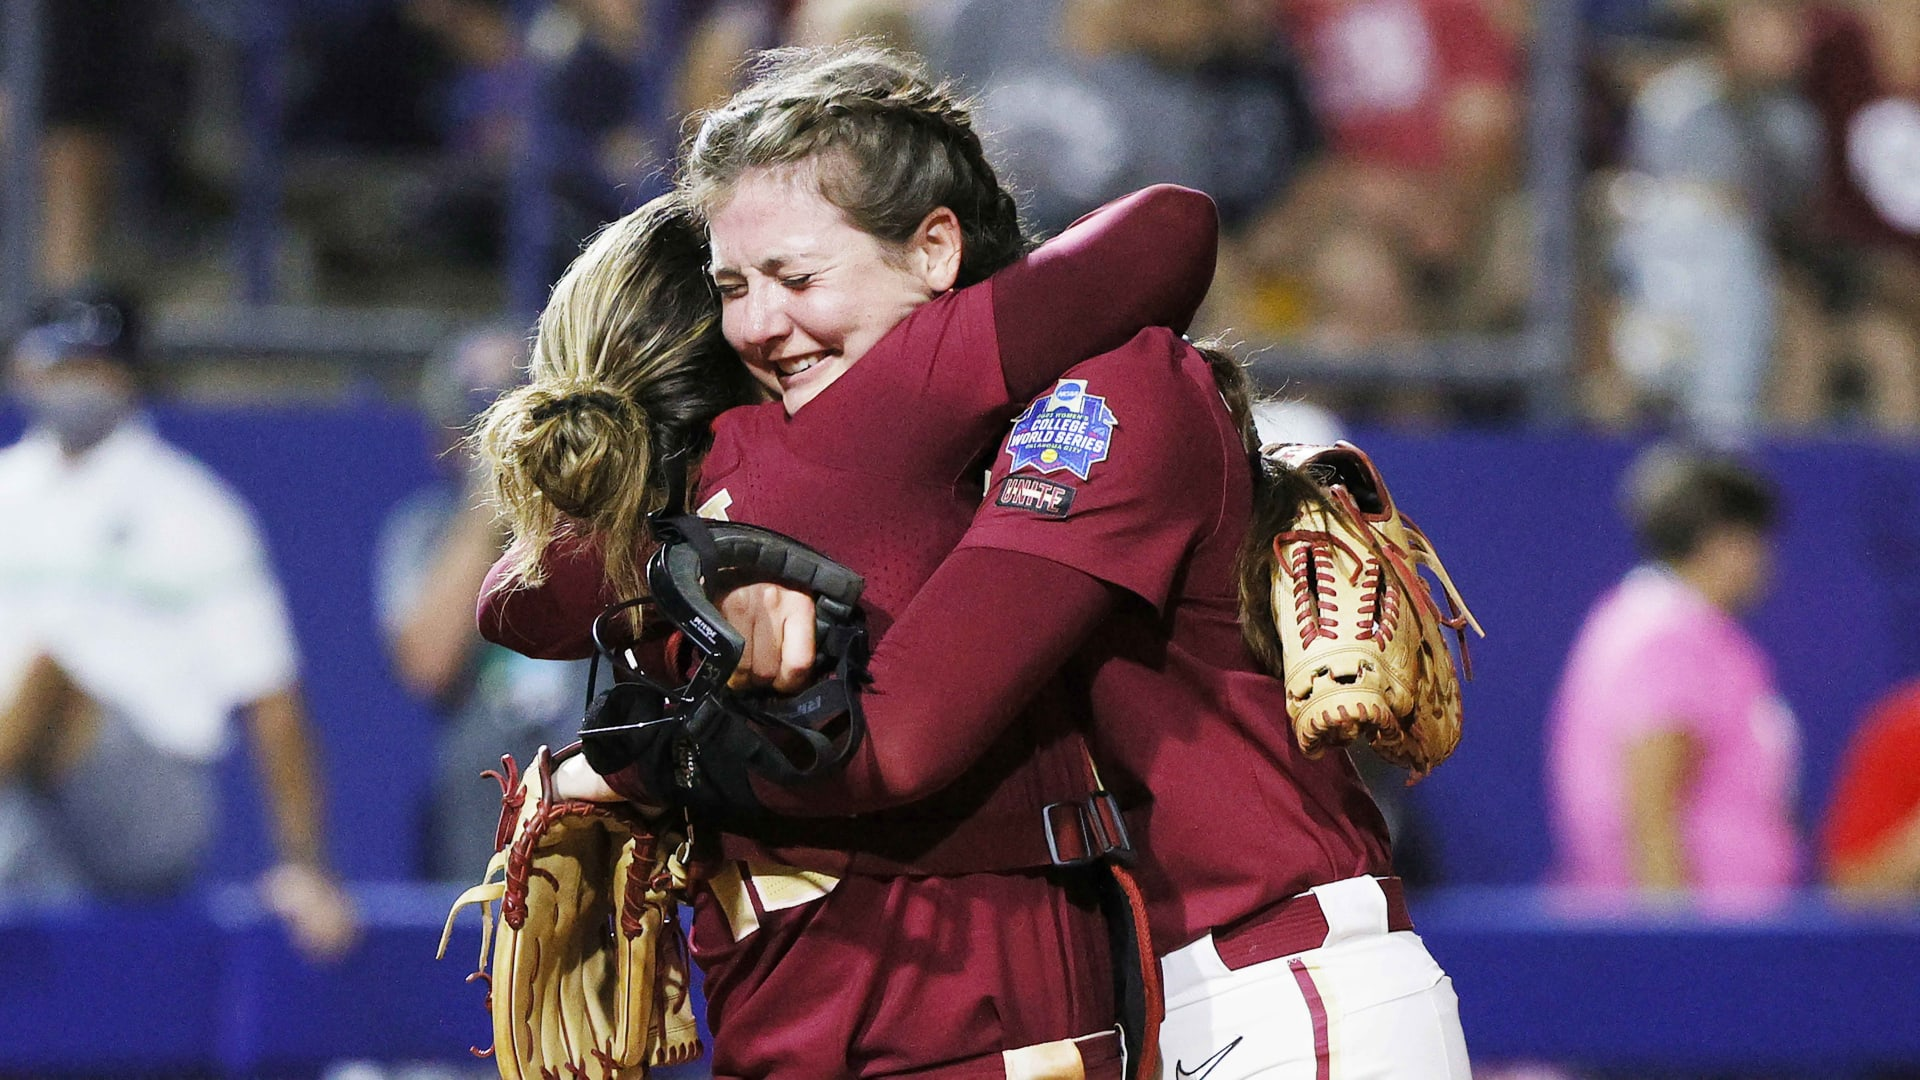 Kathryn Sandercock (right) and Anna Shelnutt of the Florida State Seminoles celebrate their Game 1 win at the Women's College World Series Championship against the Oklahoma Sooners on June 8, 2021, in Oklahoma City, Oklahoma.